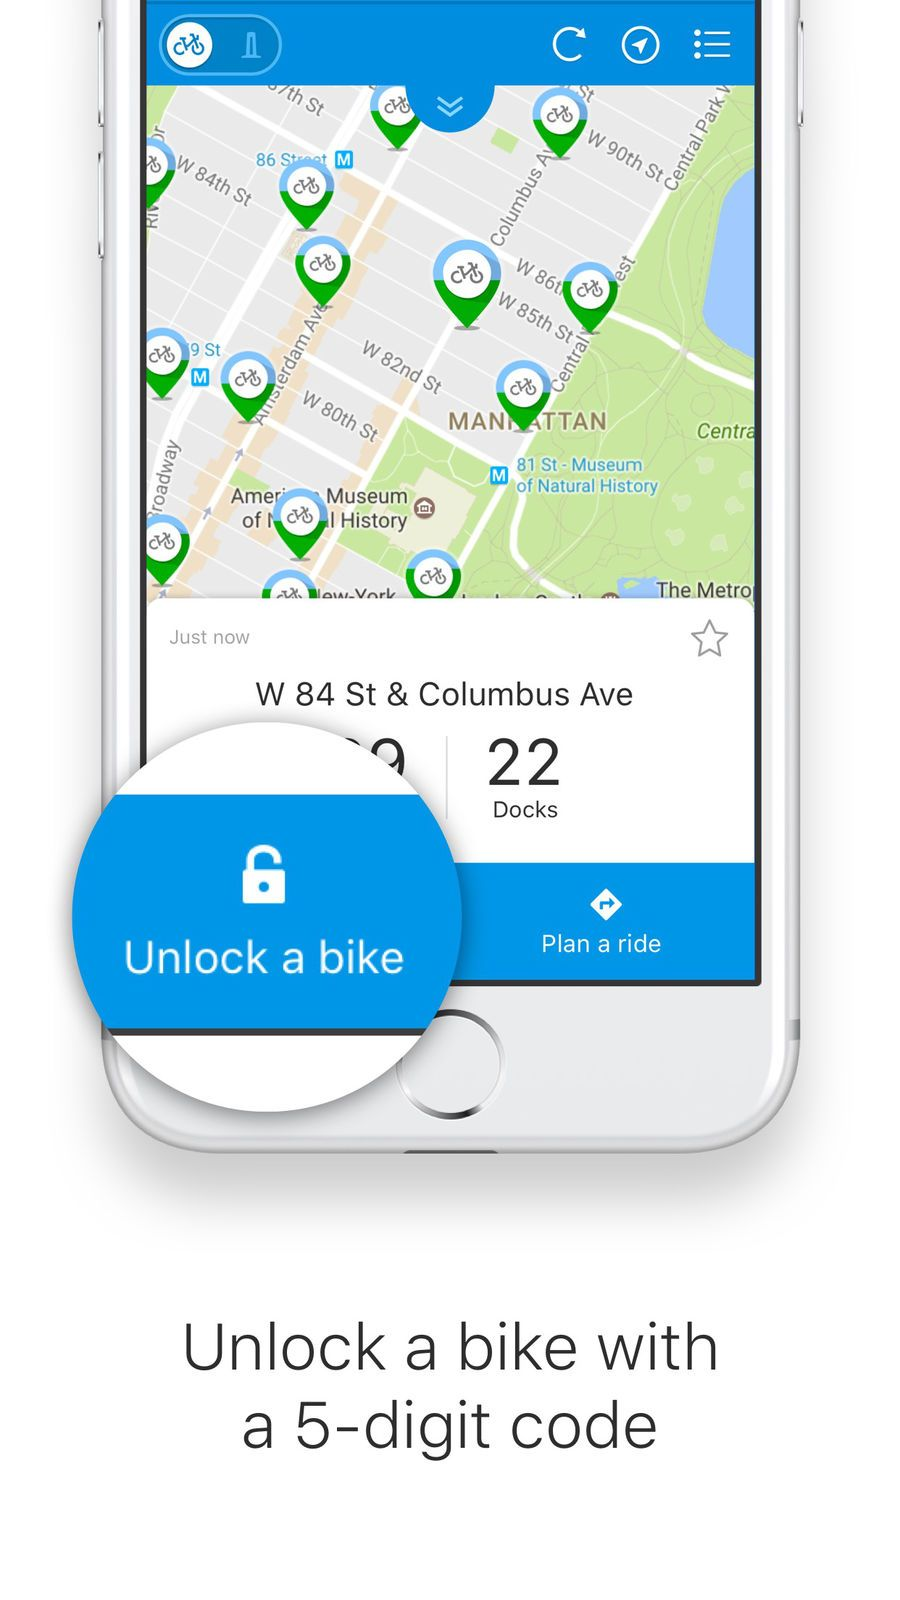 Citi Bike Ios Apps App Navigation Bike Html Design Templates App